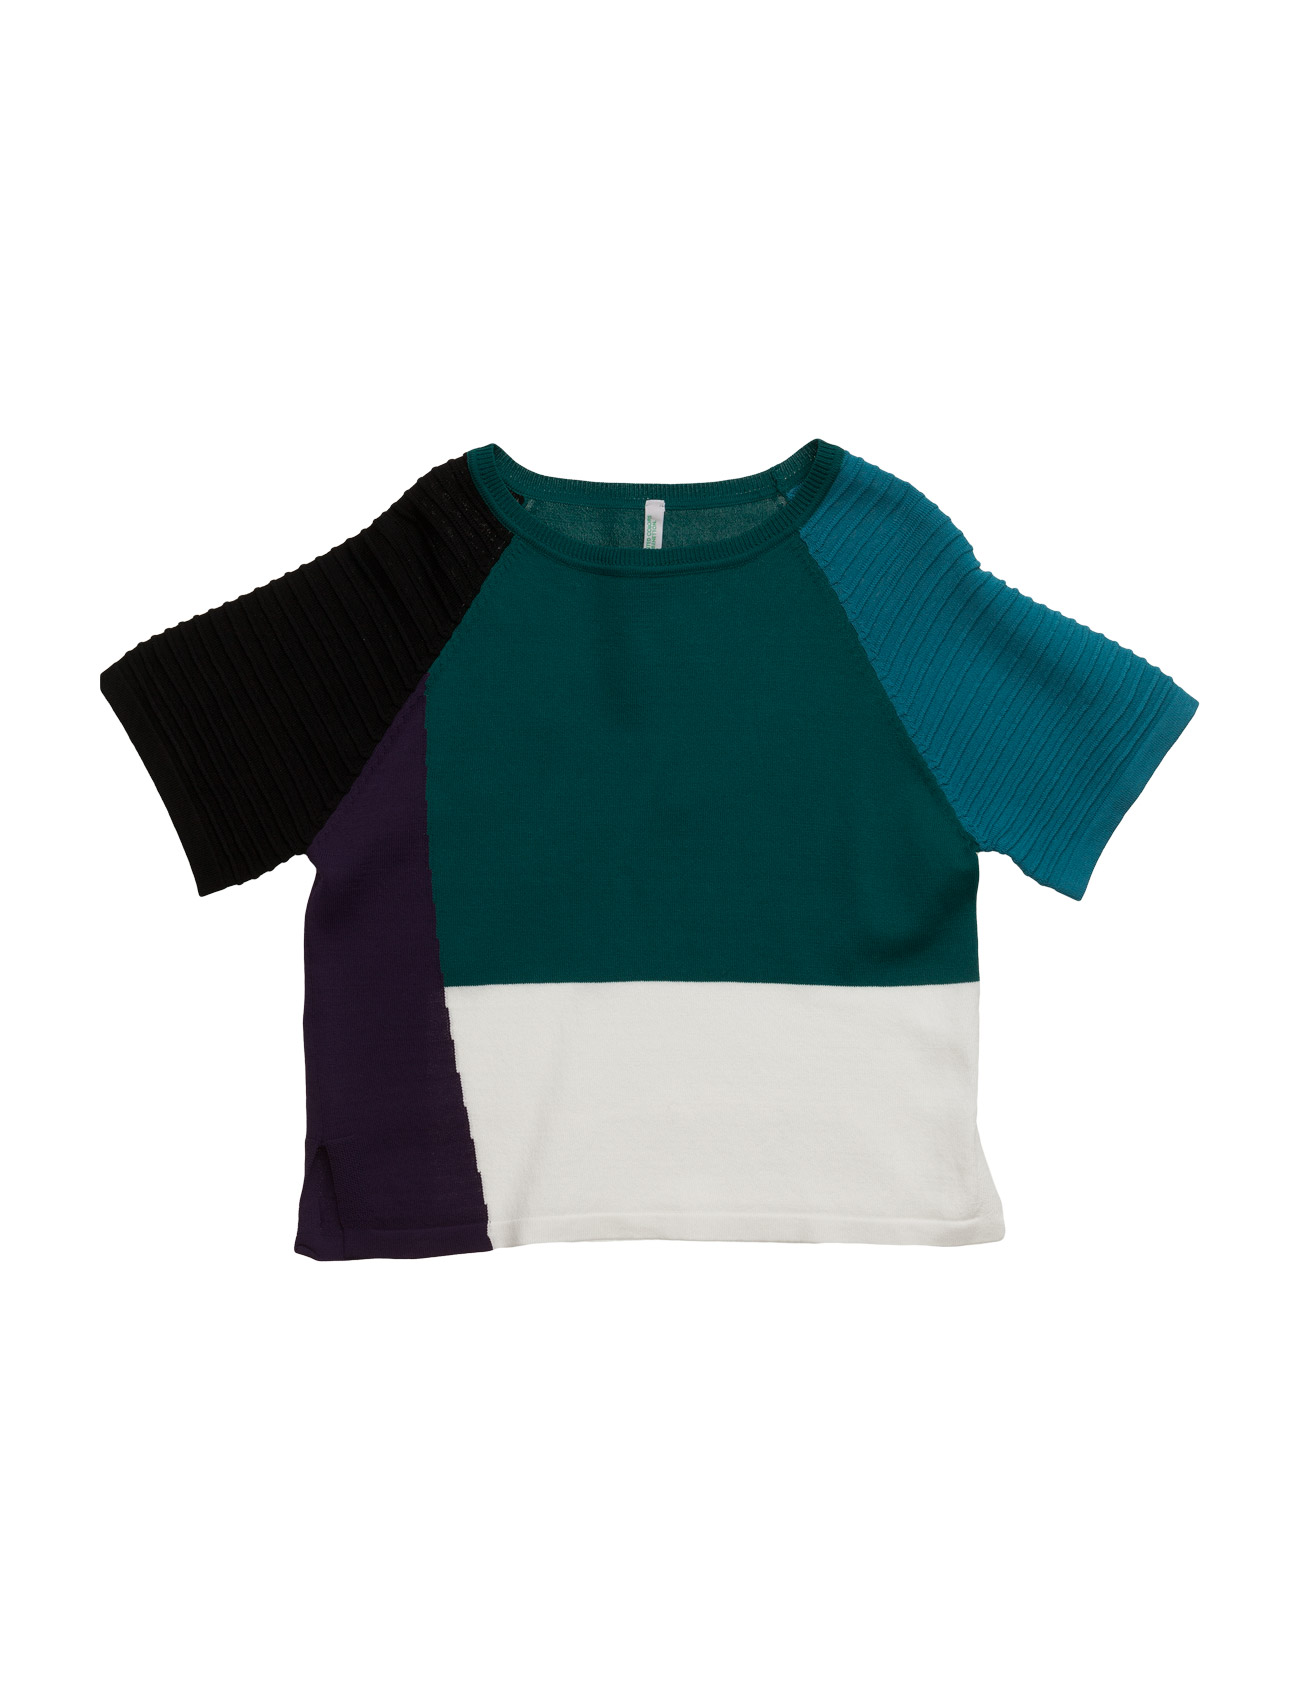 Sweater H/S United Colors of Benetton  til Børn i